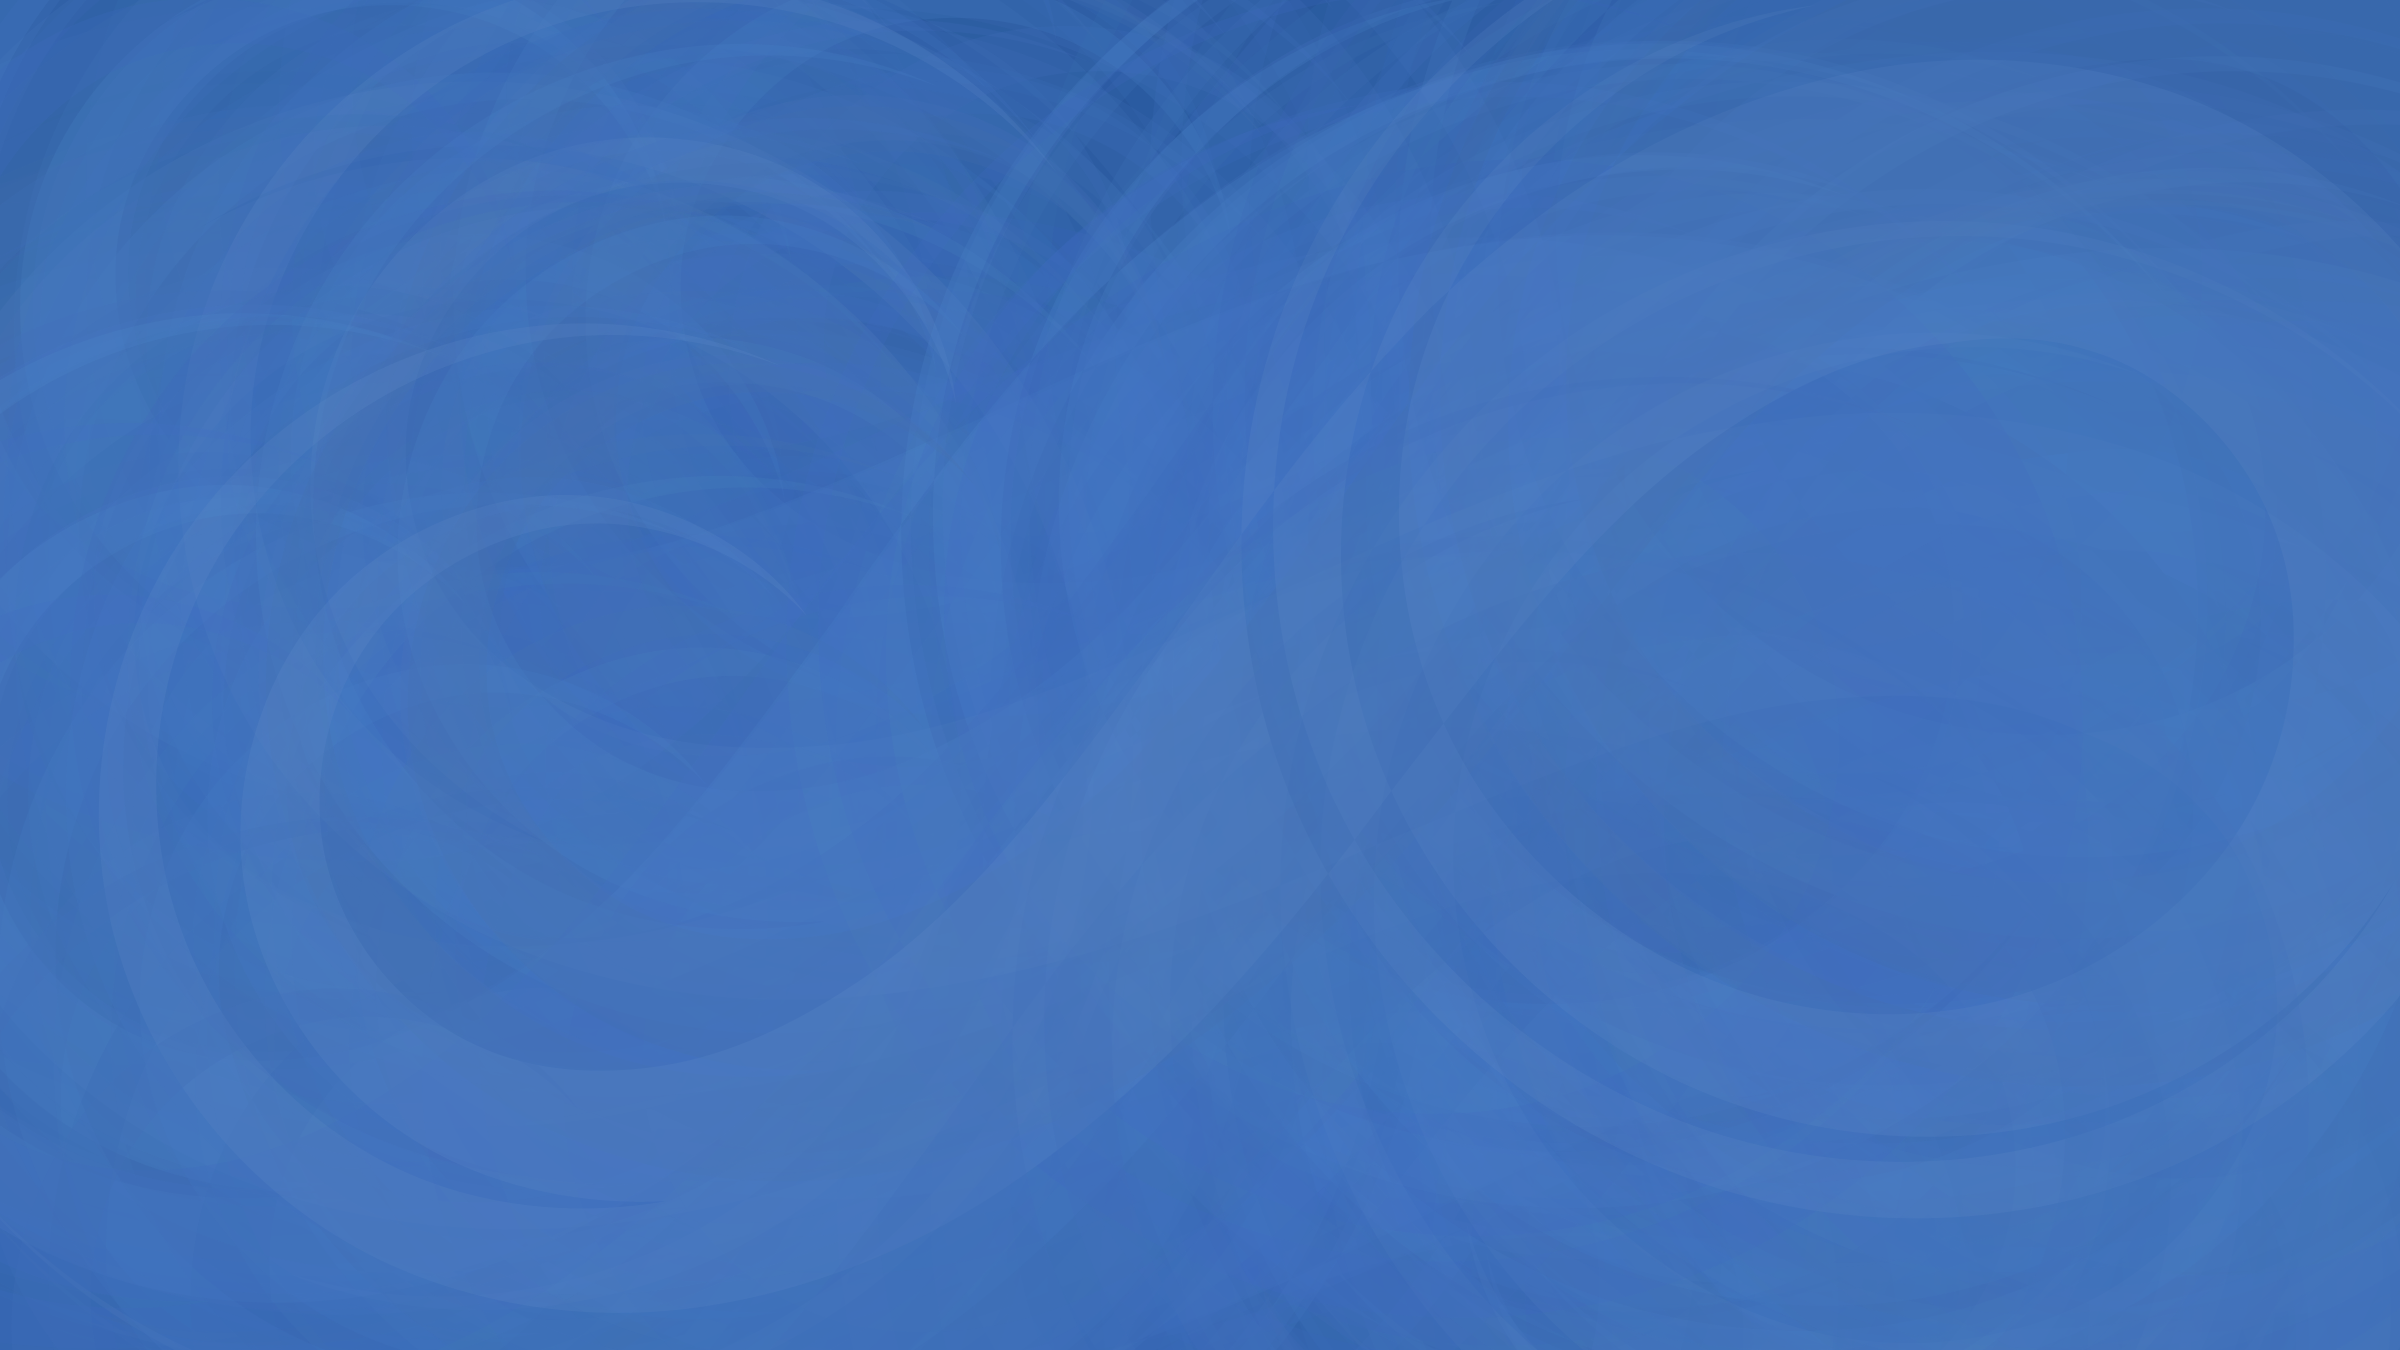 Soft feathered blue background by Tomas Sobek